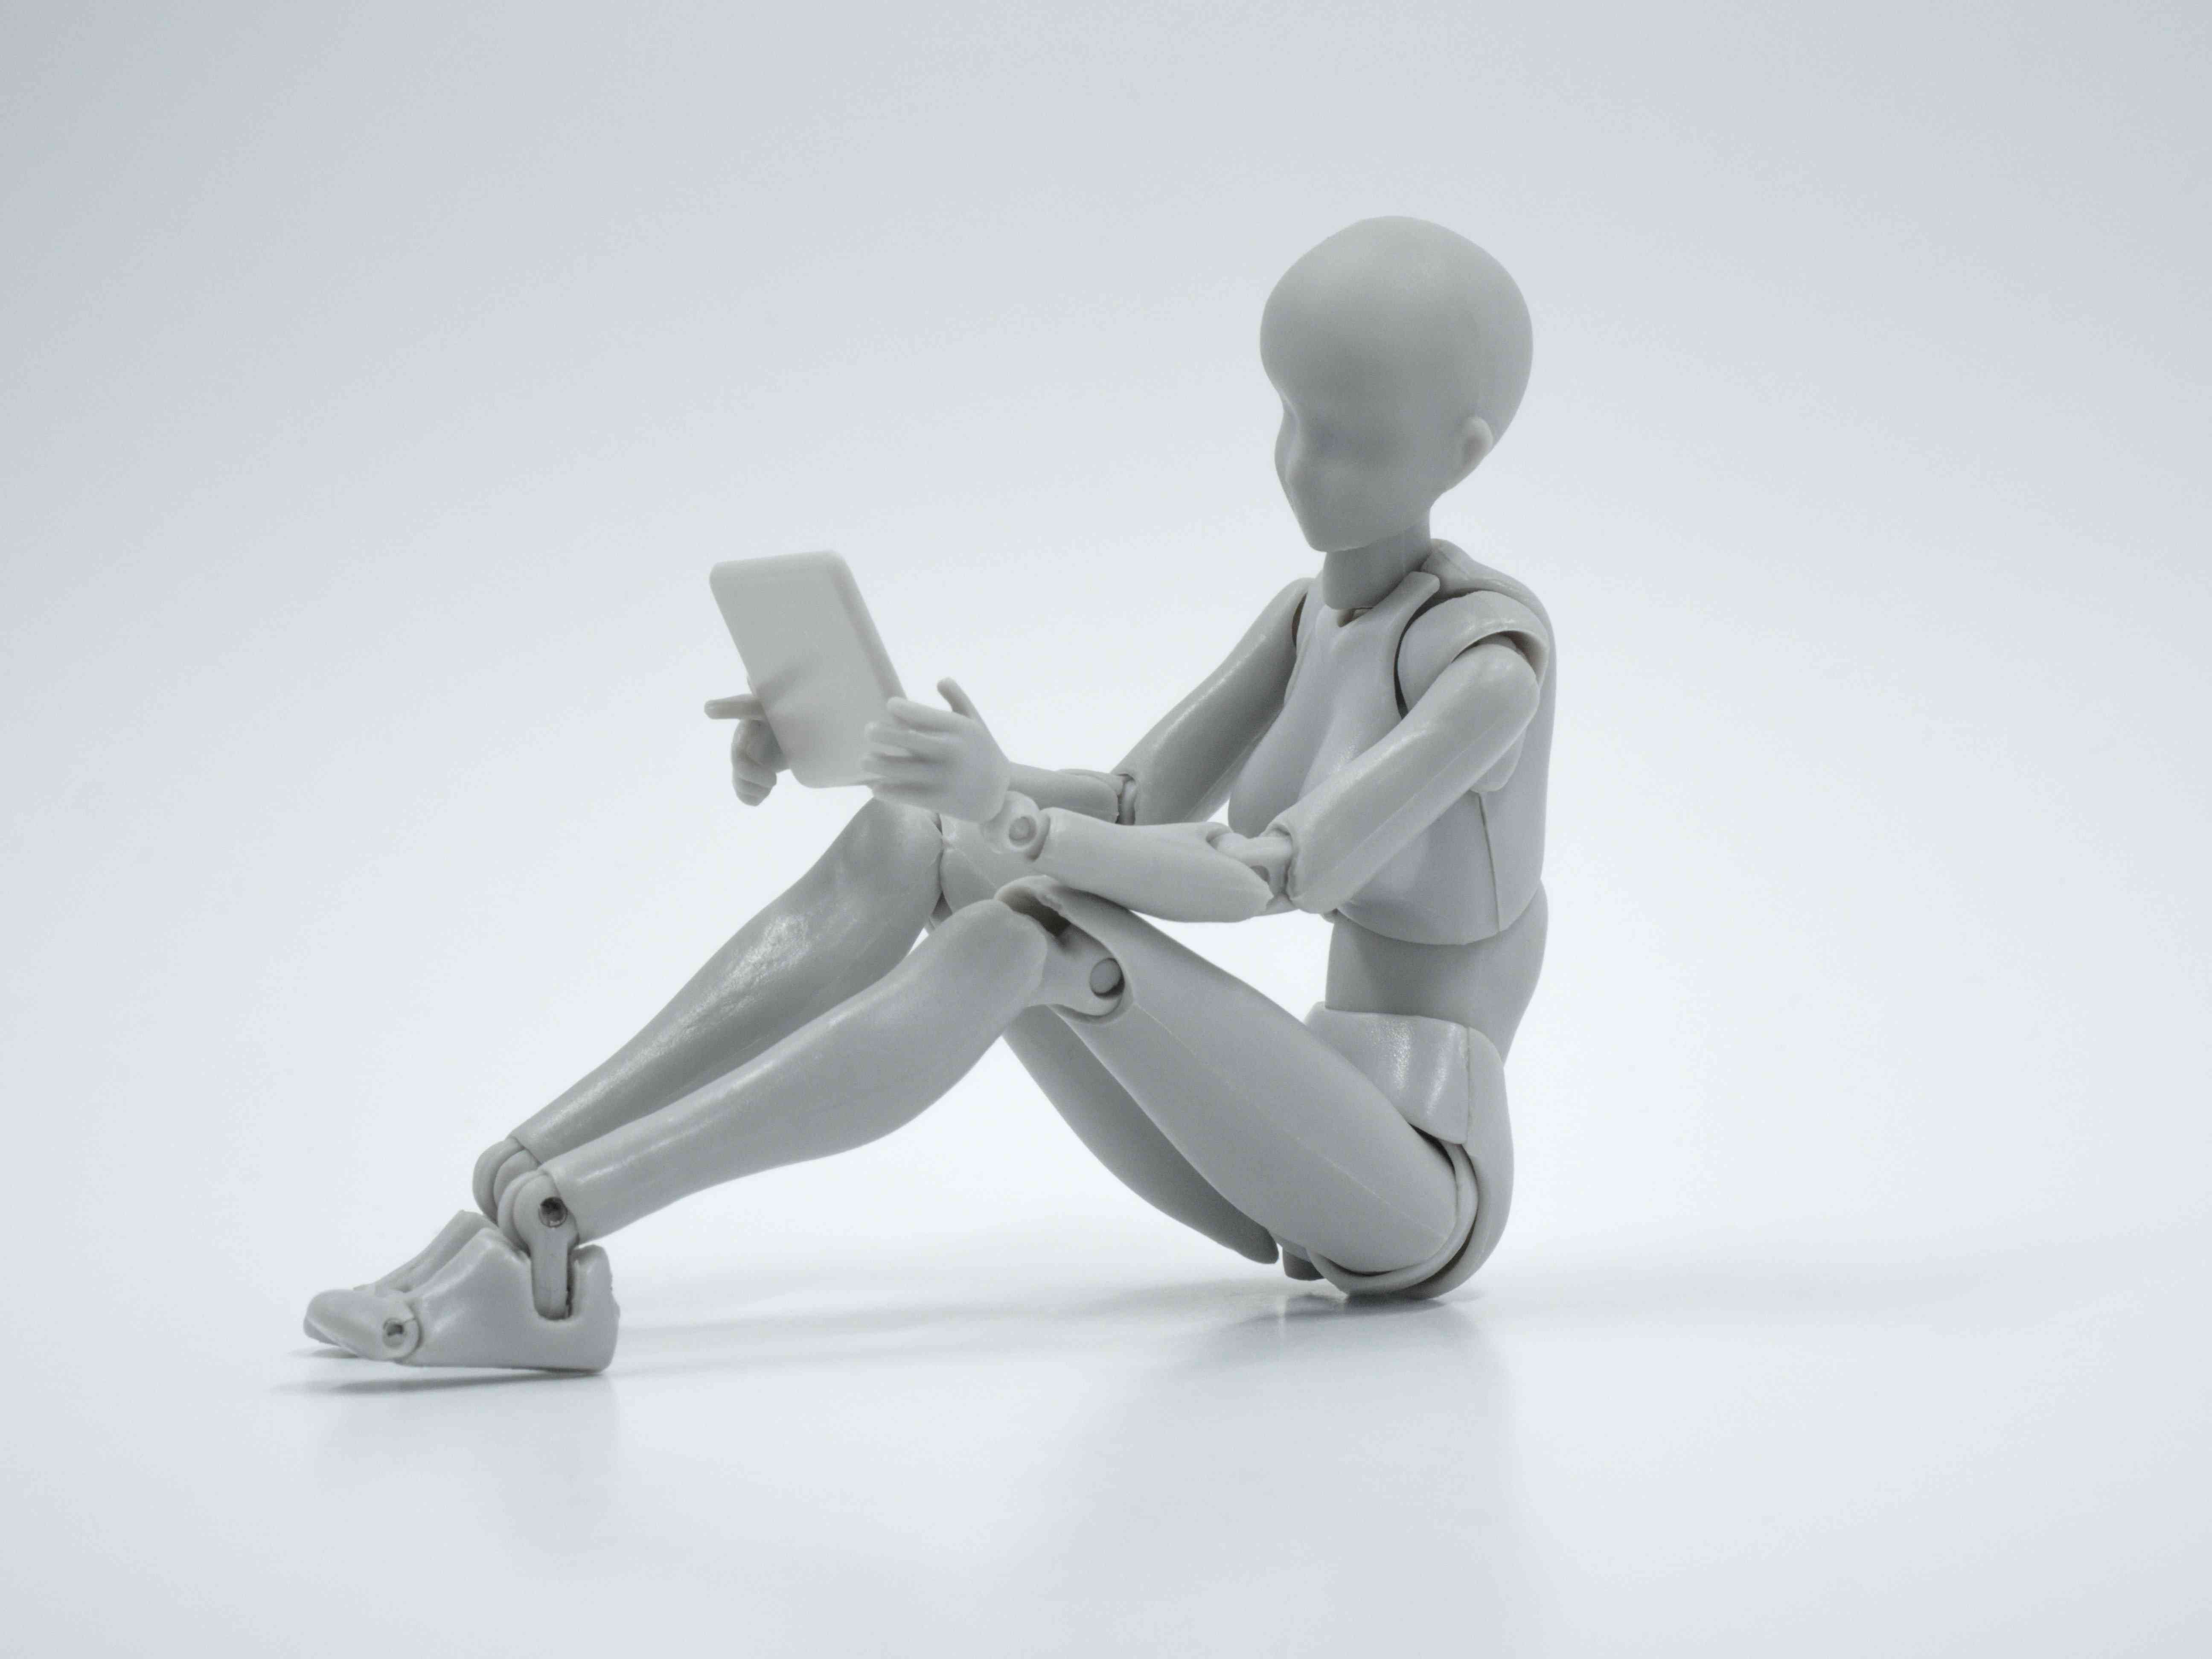 A plastic figuring with only minimal features, holding a tablet as if reading from it.